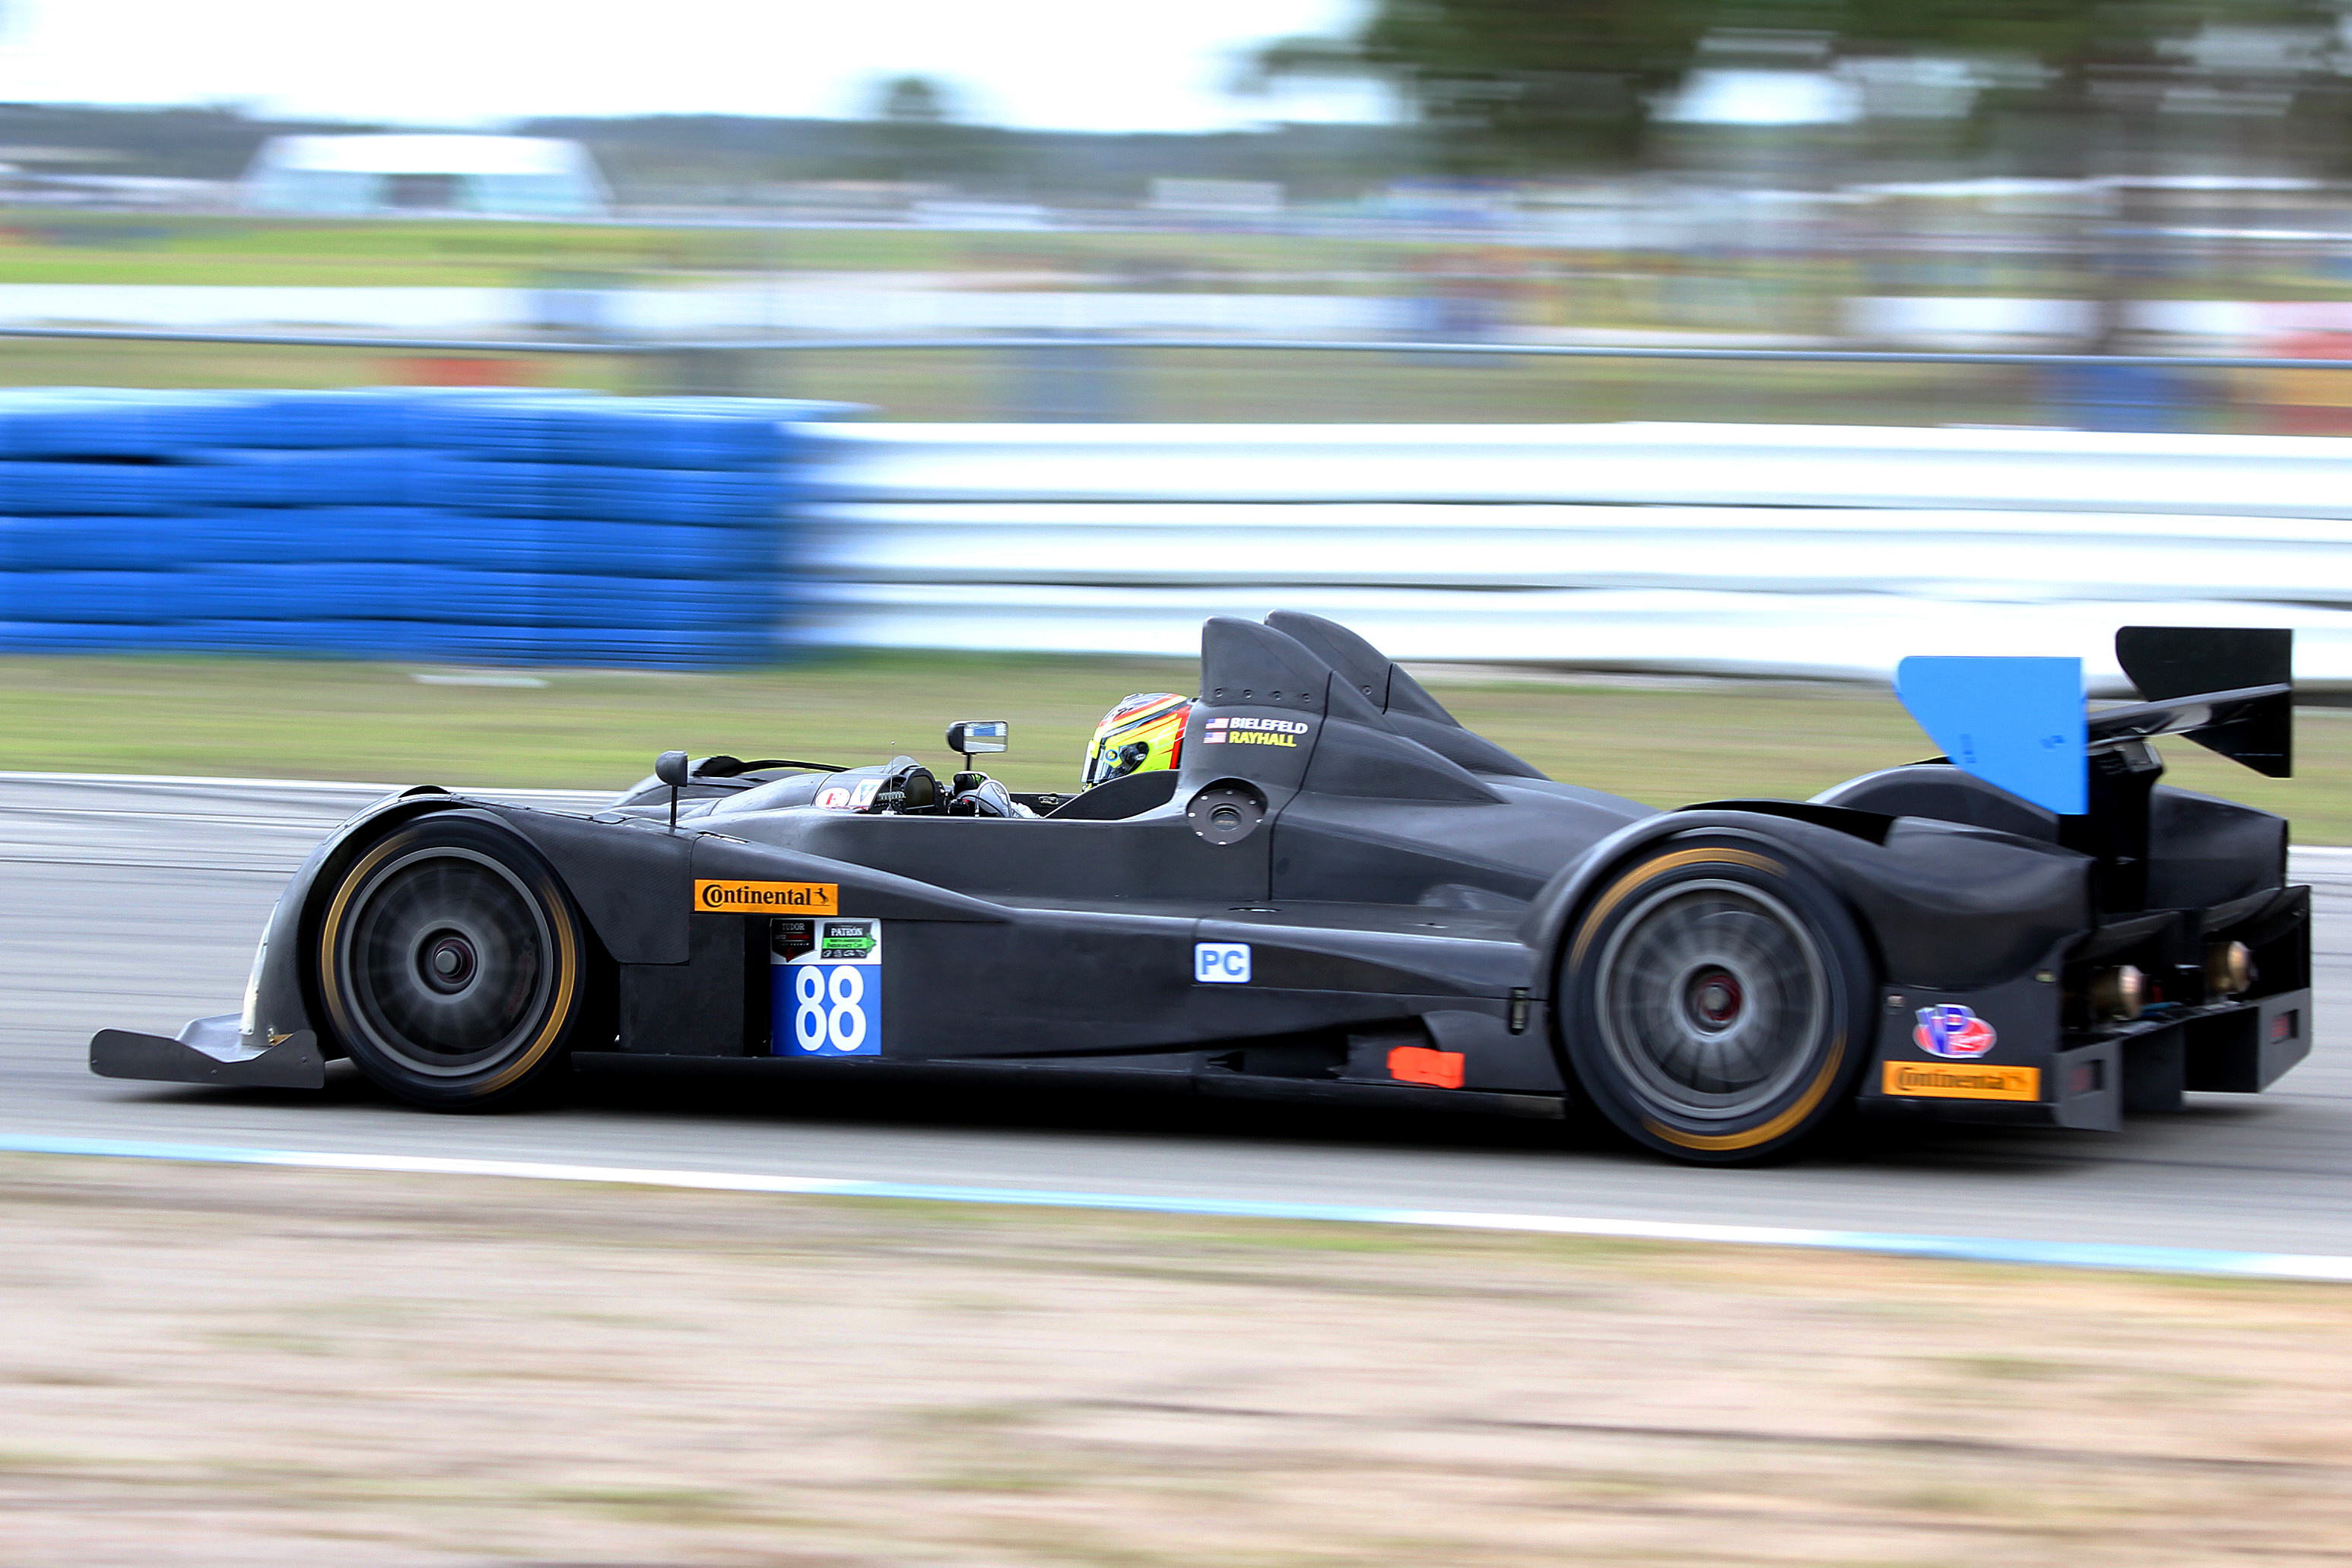 The #88 Bar1 Motorsports Oreca-Chevrolet was quickest in the PC class Friday morning. (Chris Jasurek/Epoch Times)